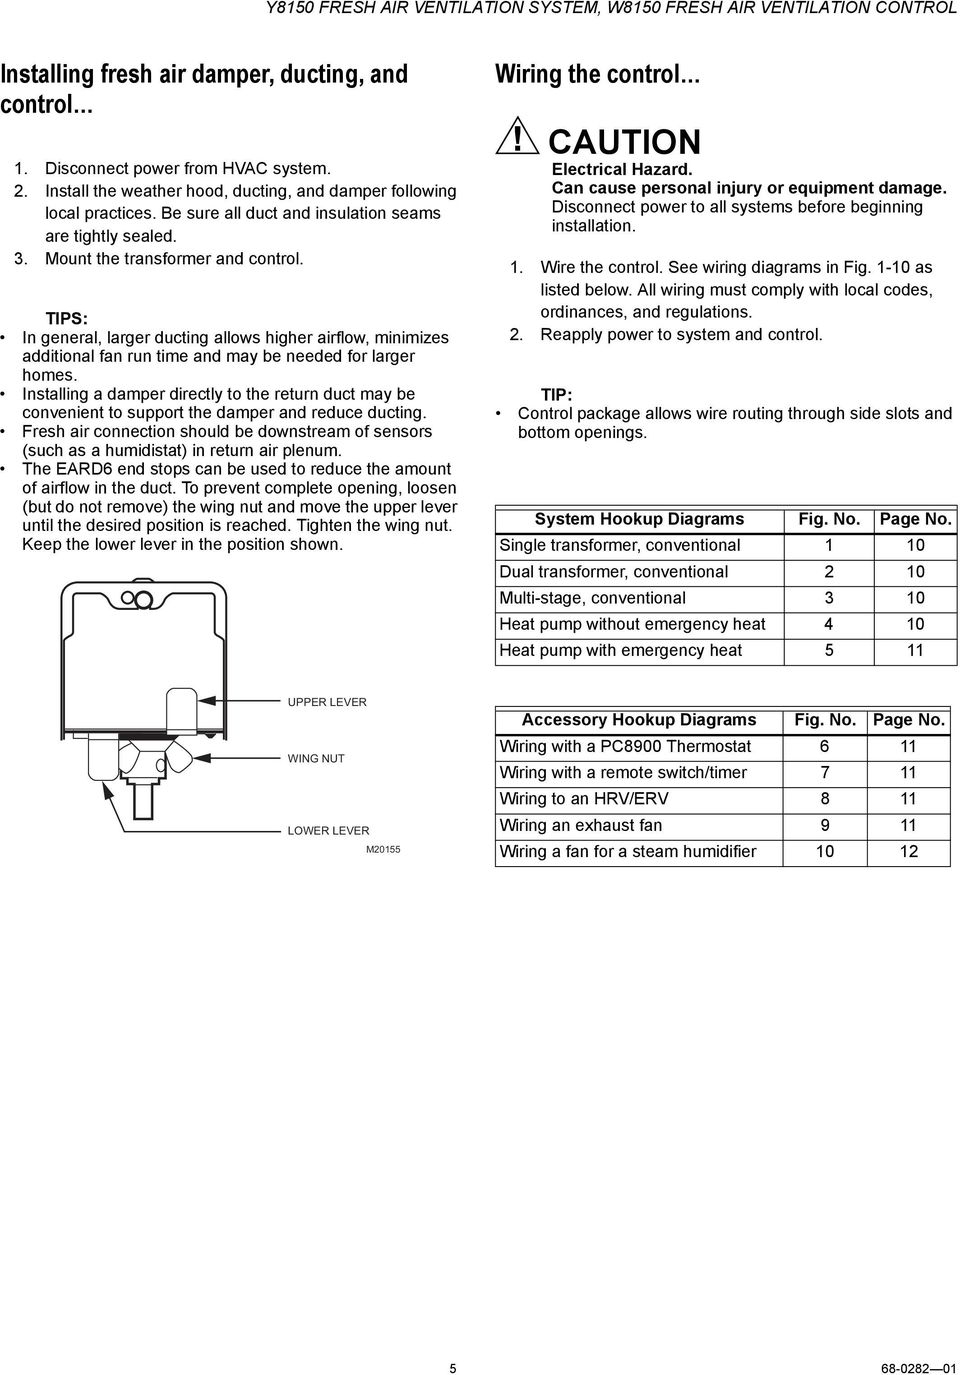 Prestige Honeywell Steam Humidifier Wiring Diagram Library Delco 1103076 Tips In General Larger Ducting Allows Higher Airflow Minimizes Additional Fan Run Time